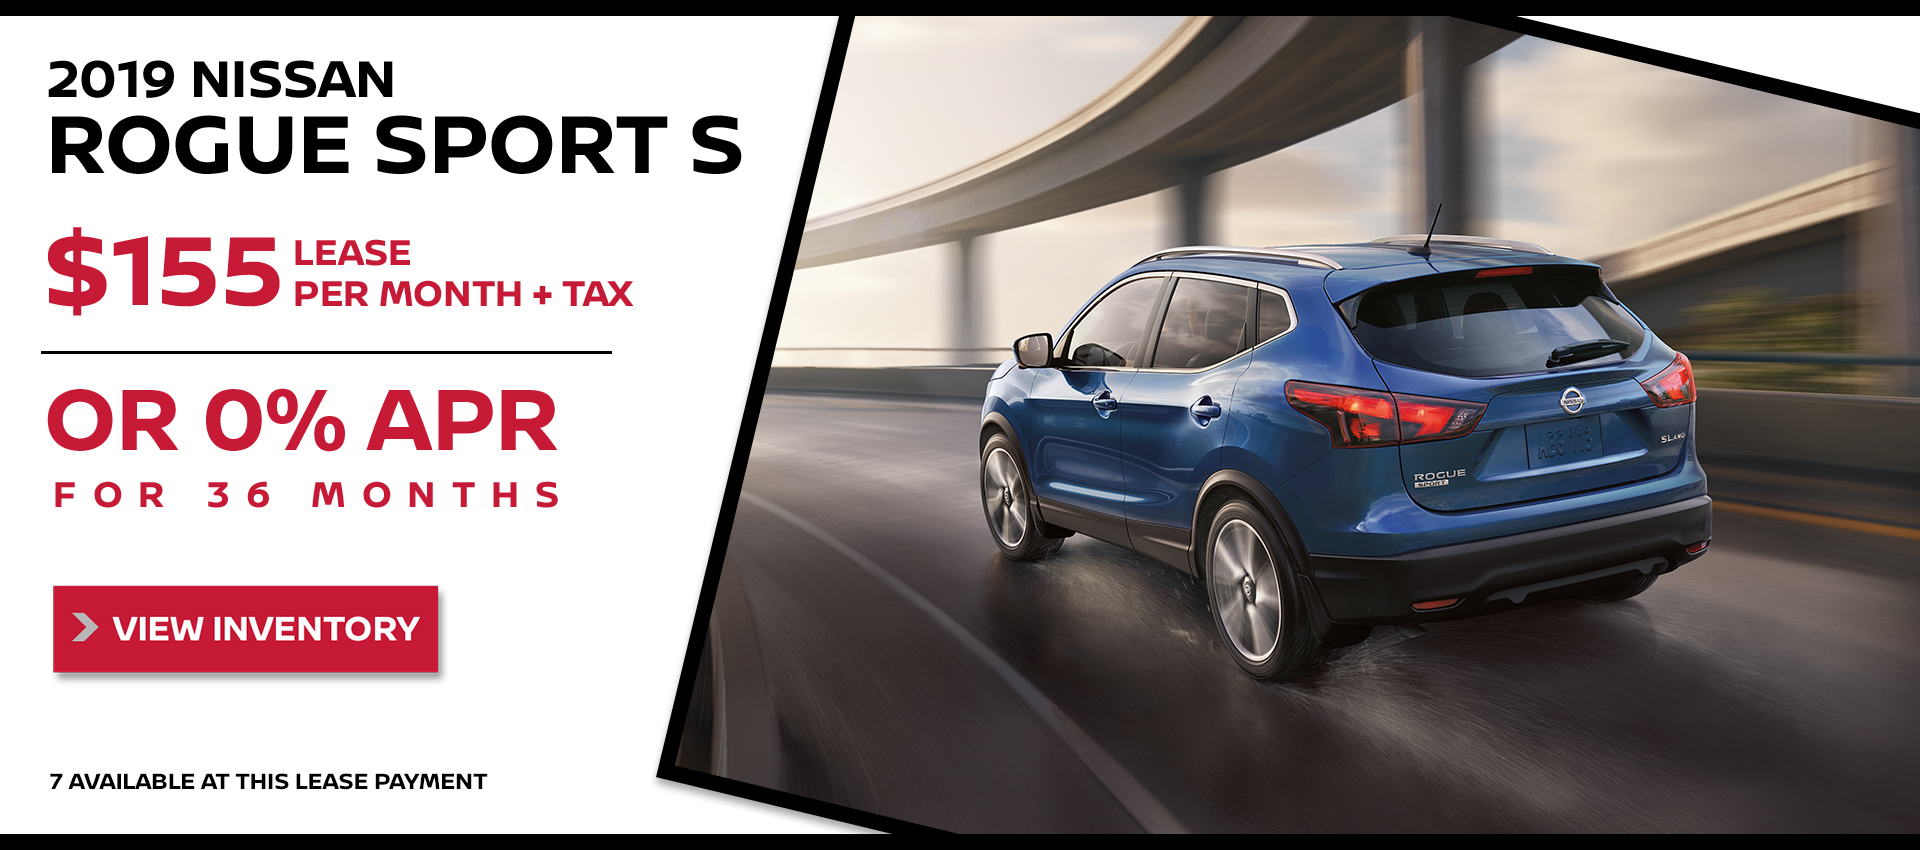 Mossy Nissan - Rogue Sport $155 Lease HP